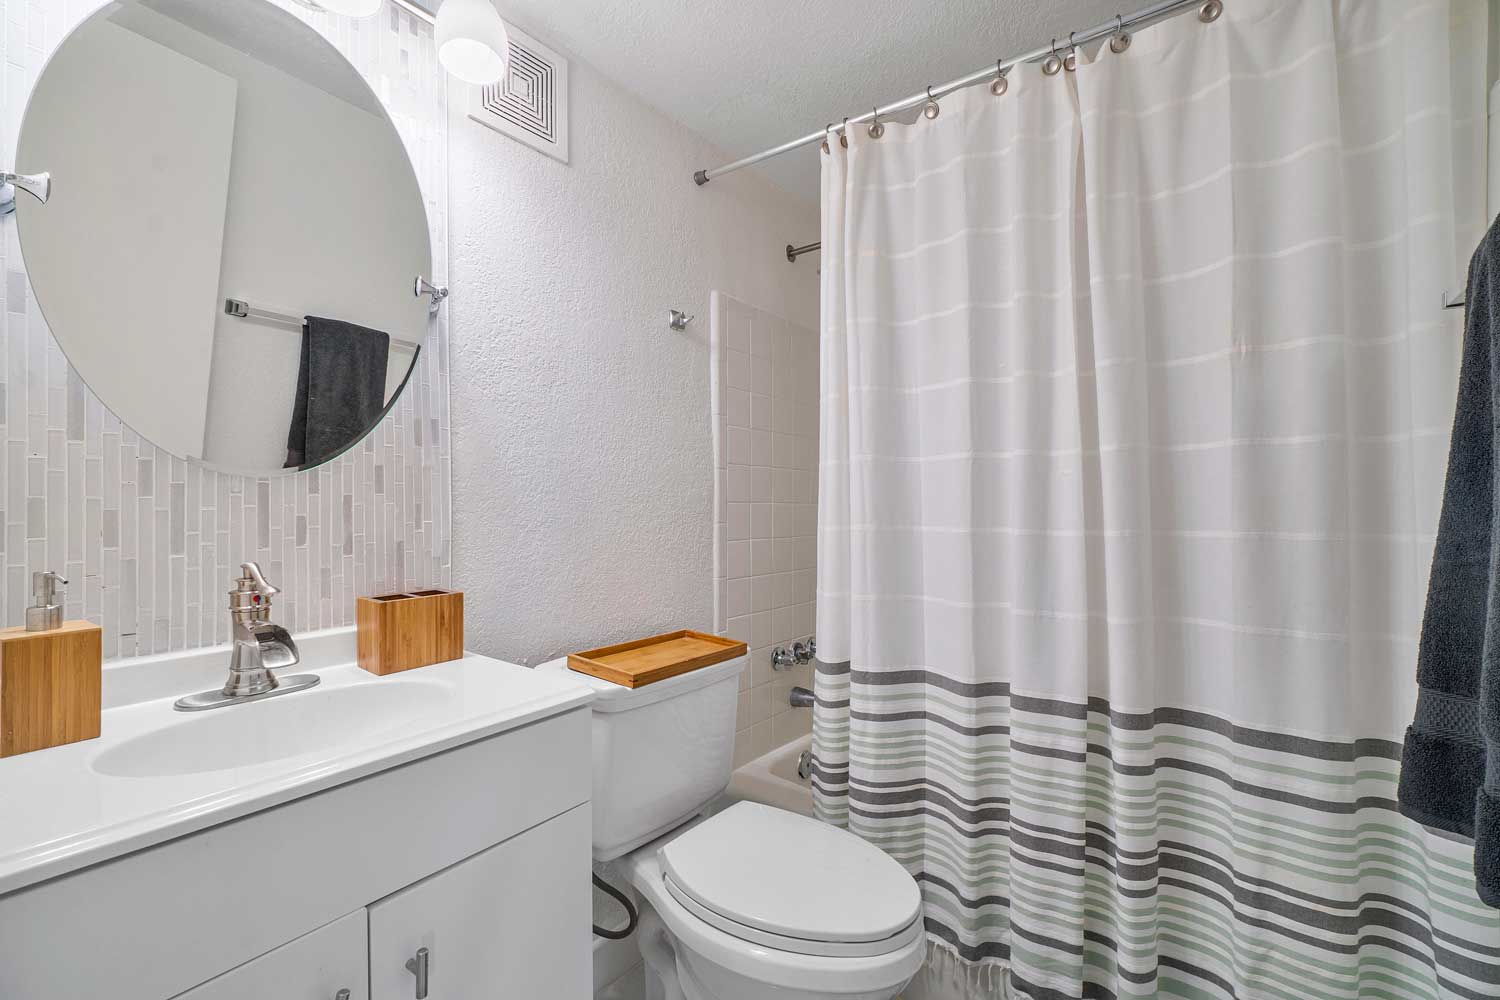 Bathroom at New Castle Lake Apartments in Miami, FL